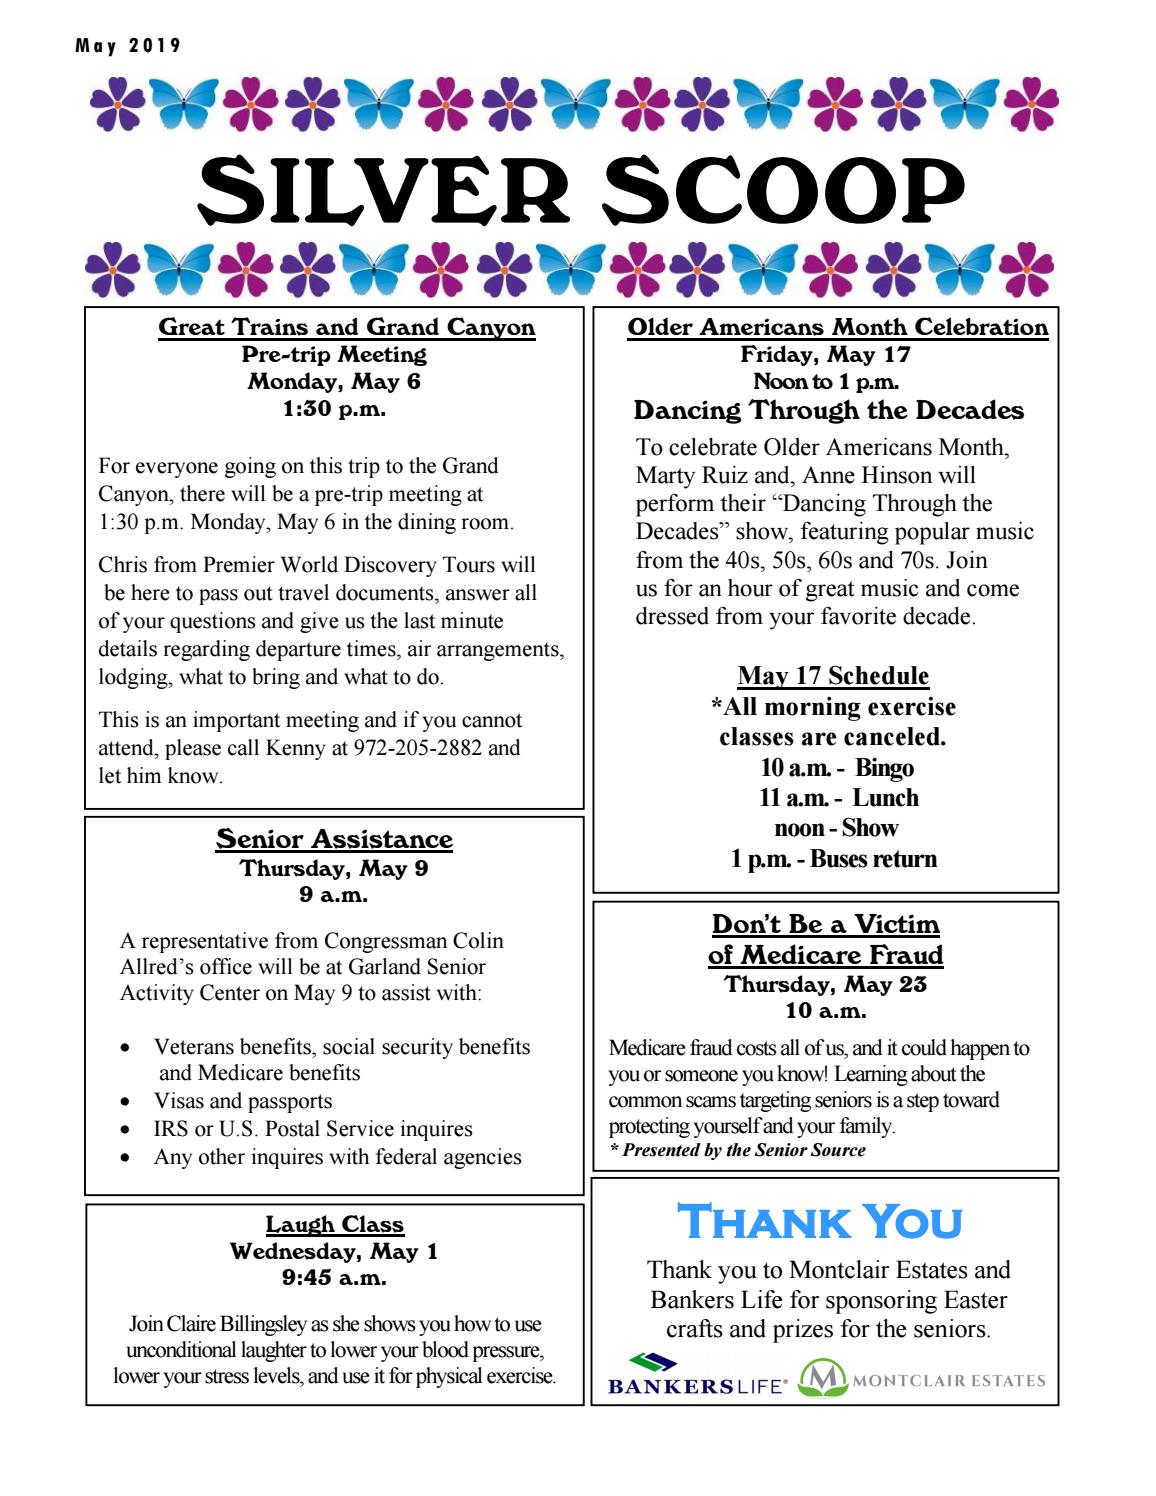 Silver Scoop May 2019 by City of Garland, Texas - issuu